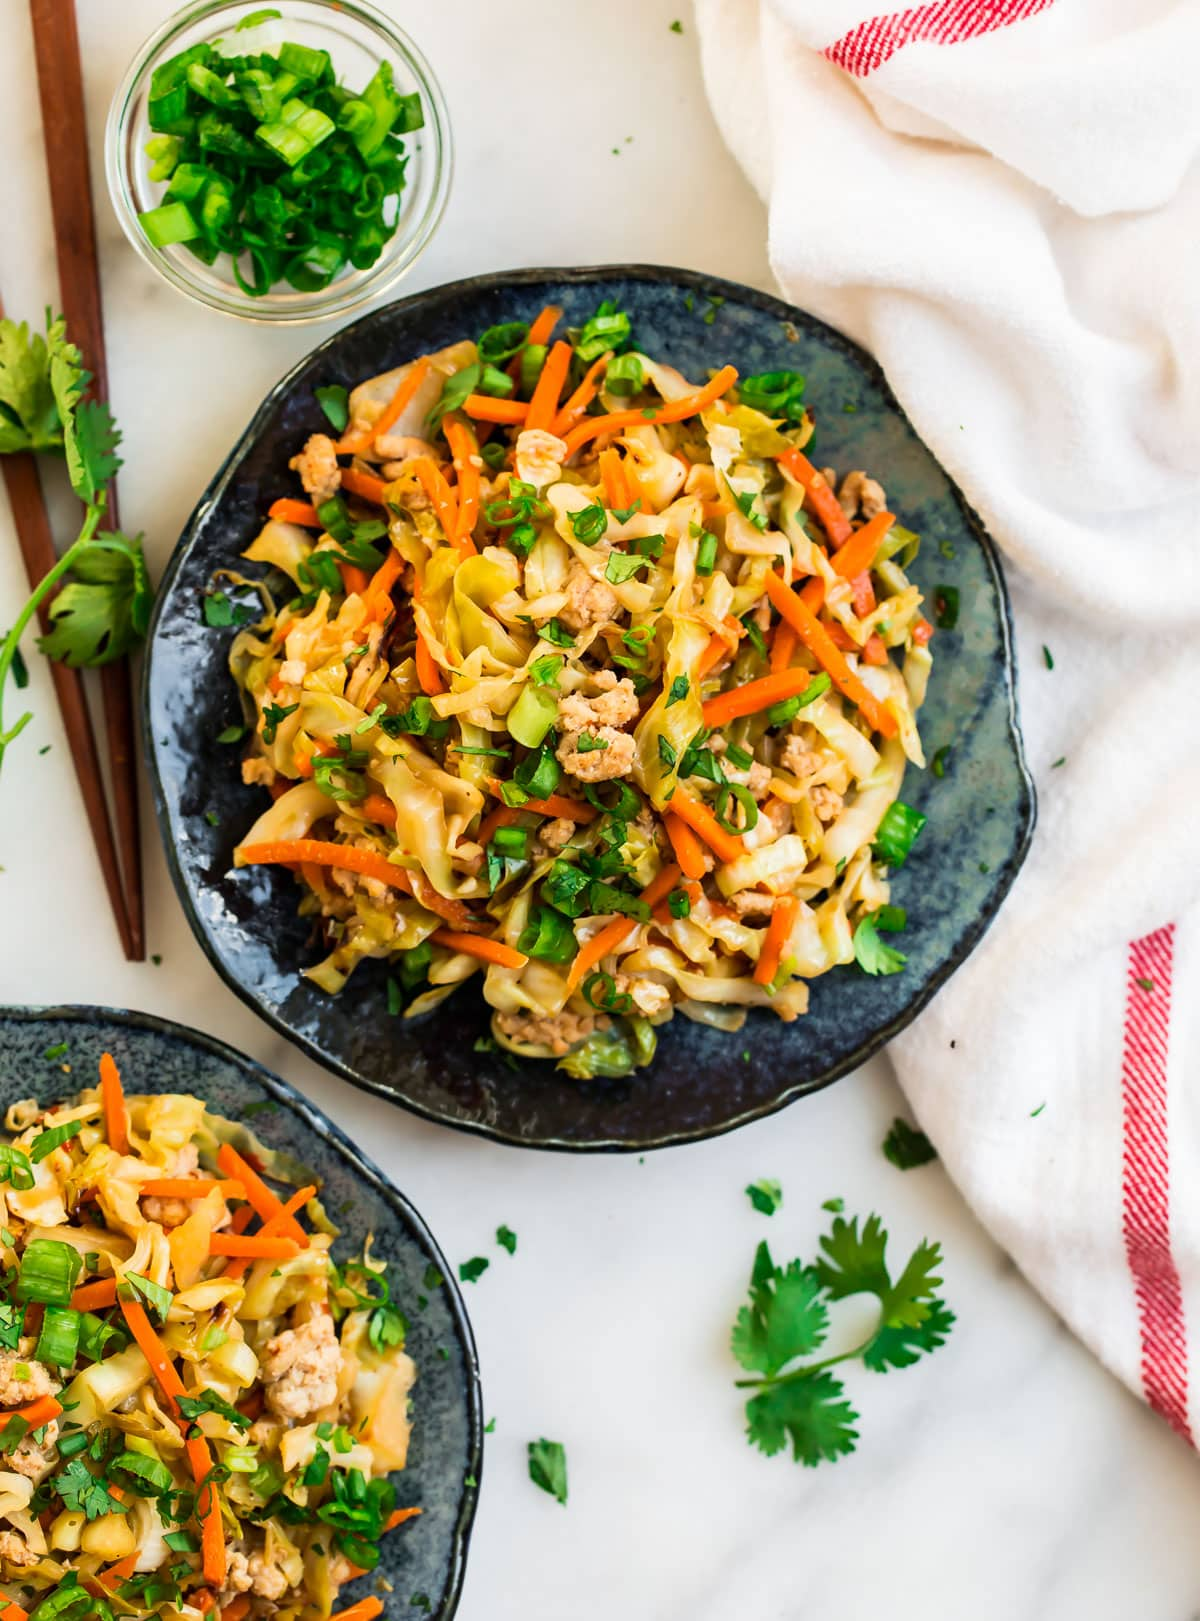 Cabbage stir fry on a plate with chicken